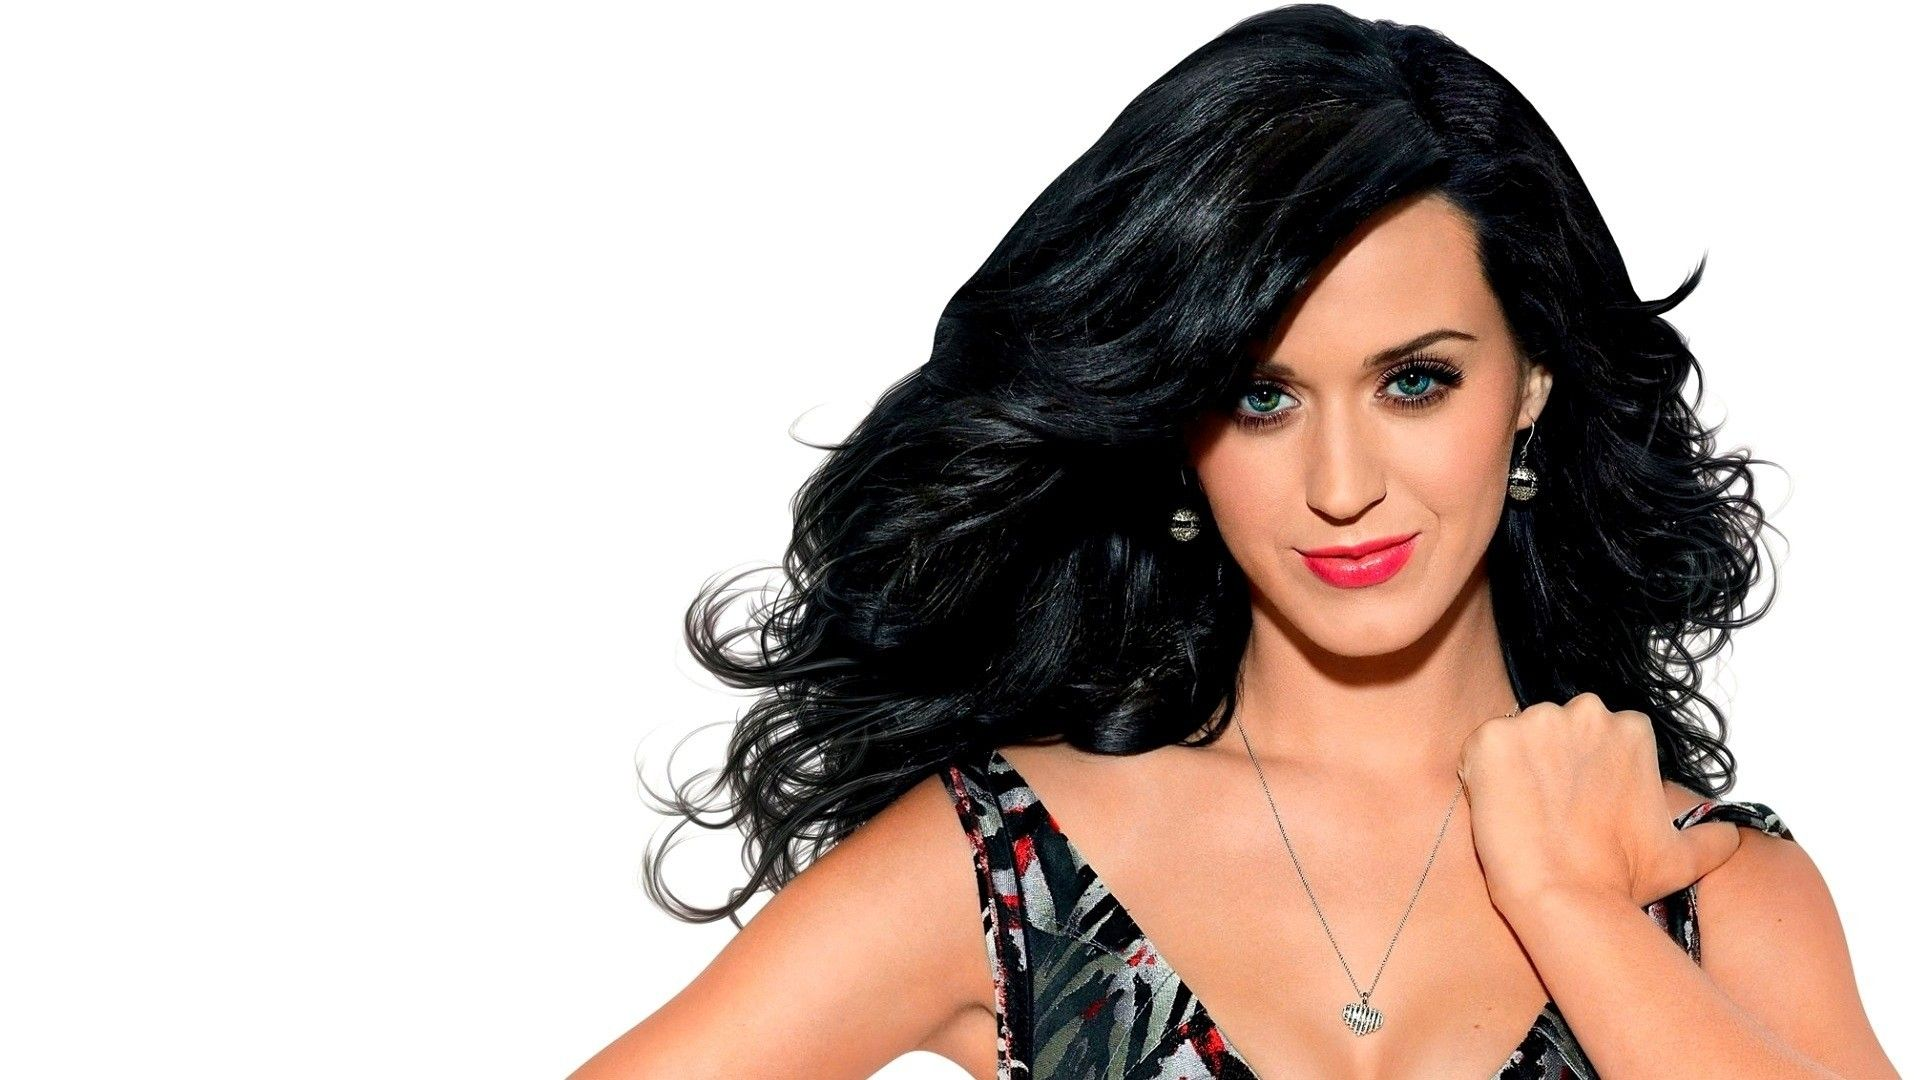 White Background Women Black Hair Necklace Singer Simple Background Red Lipstick Smil Katy Perry Wallpaper Katy Perry Images Katy Perry Pictures